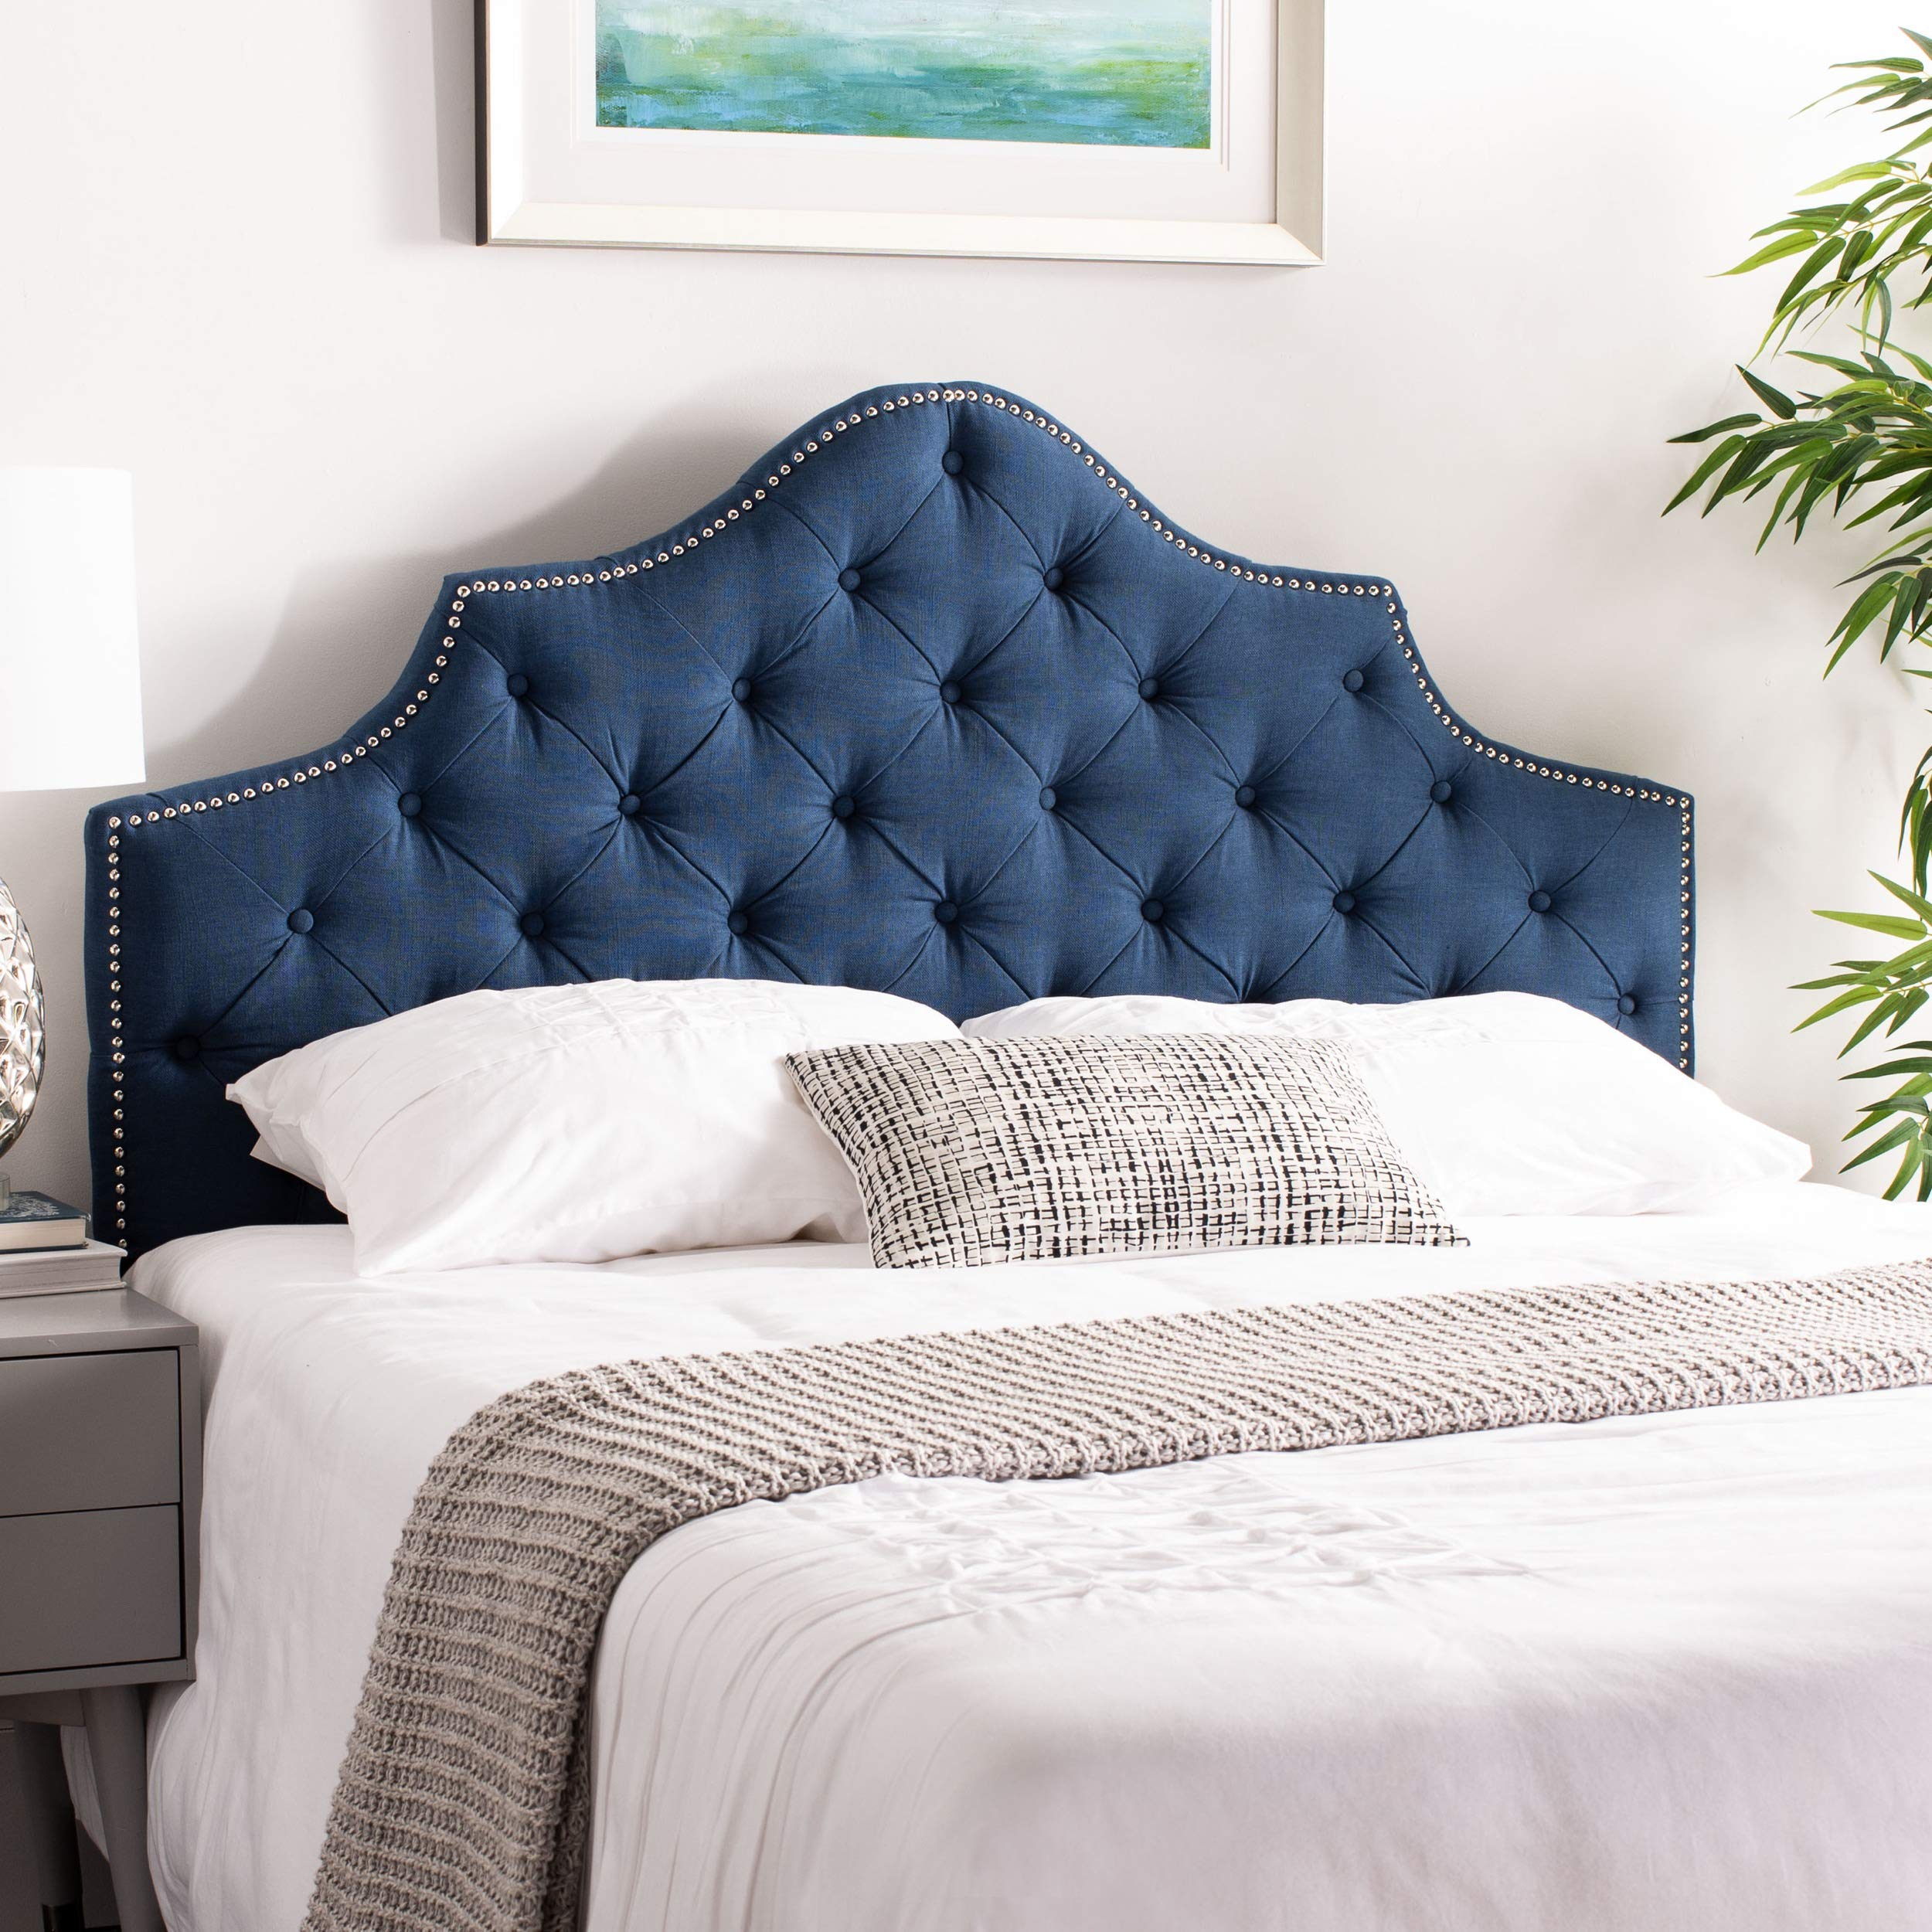 Safavieh Mercer Collection Arebelle Steel Blue Tufted Headboard (Queen)